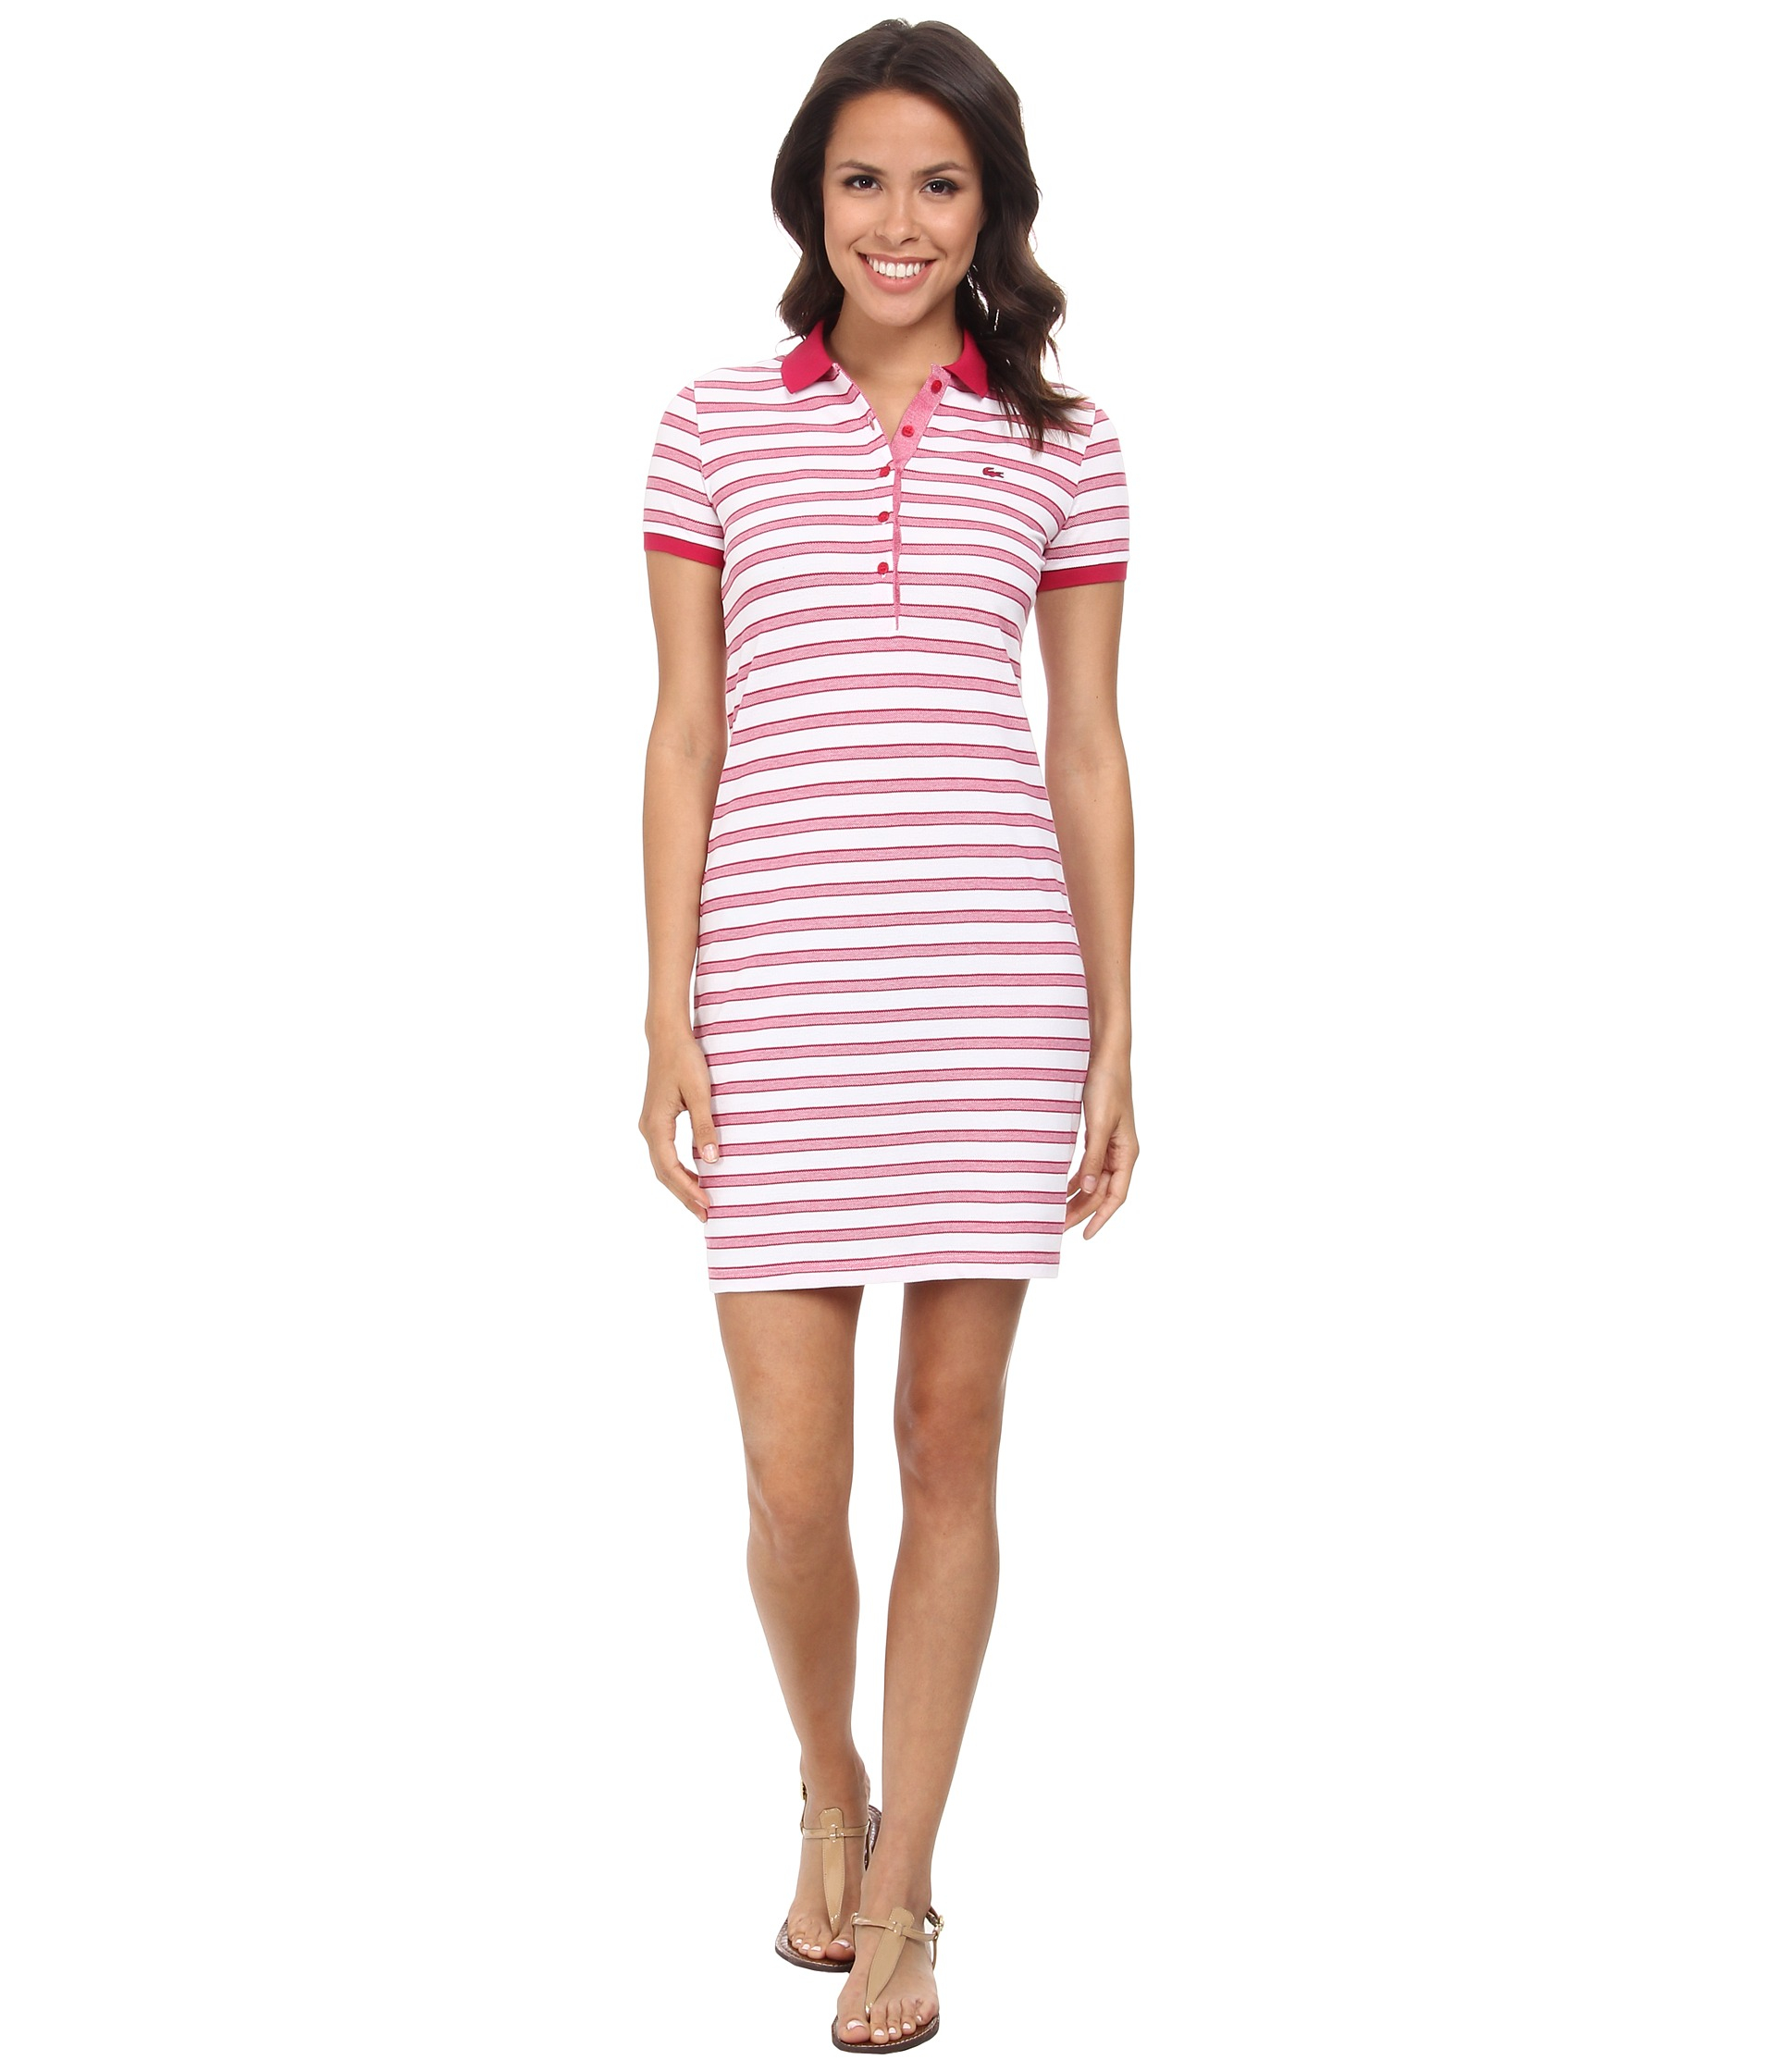 d05091a77e7014 Lyst - Lacoste Short Sleeve Stripe Pique Polo Dress in Red